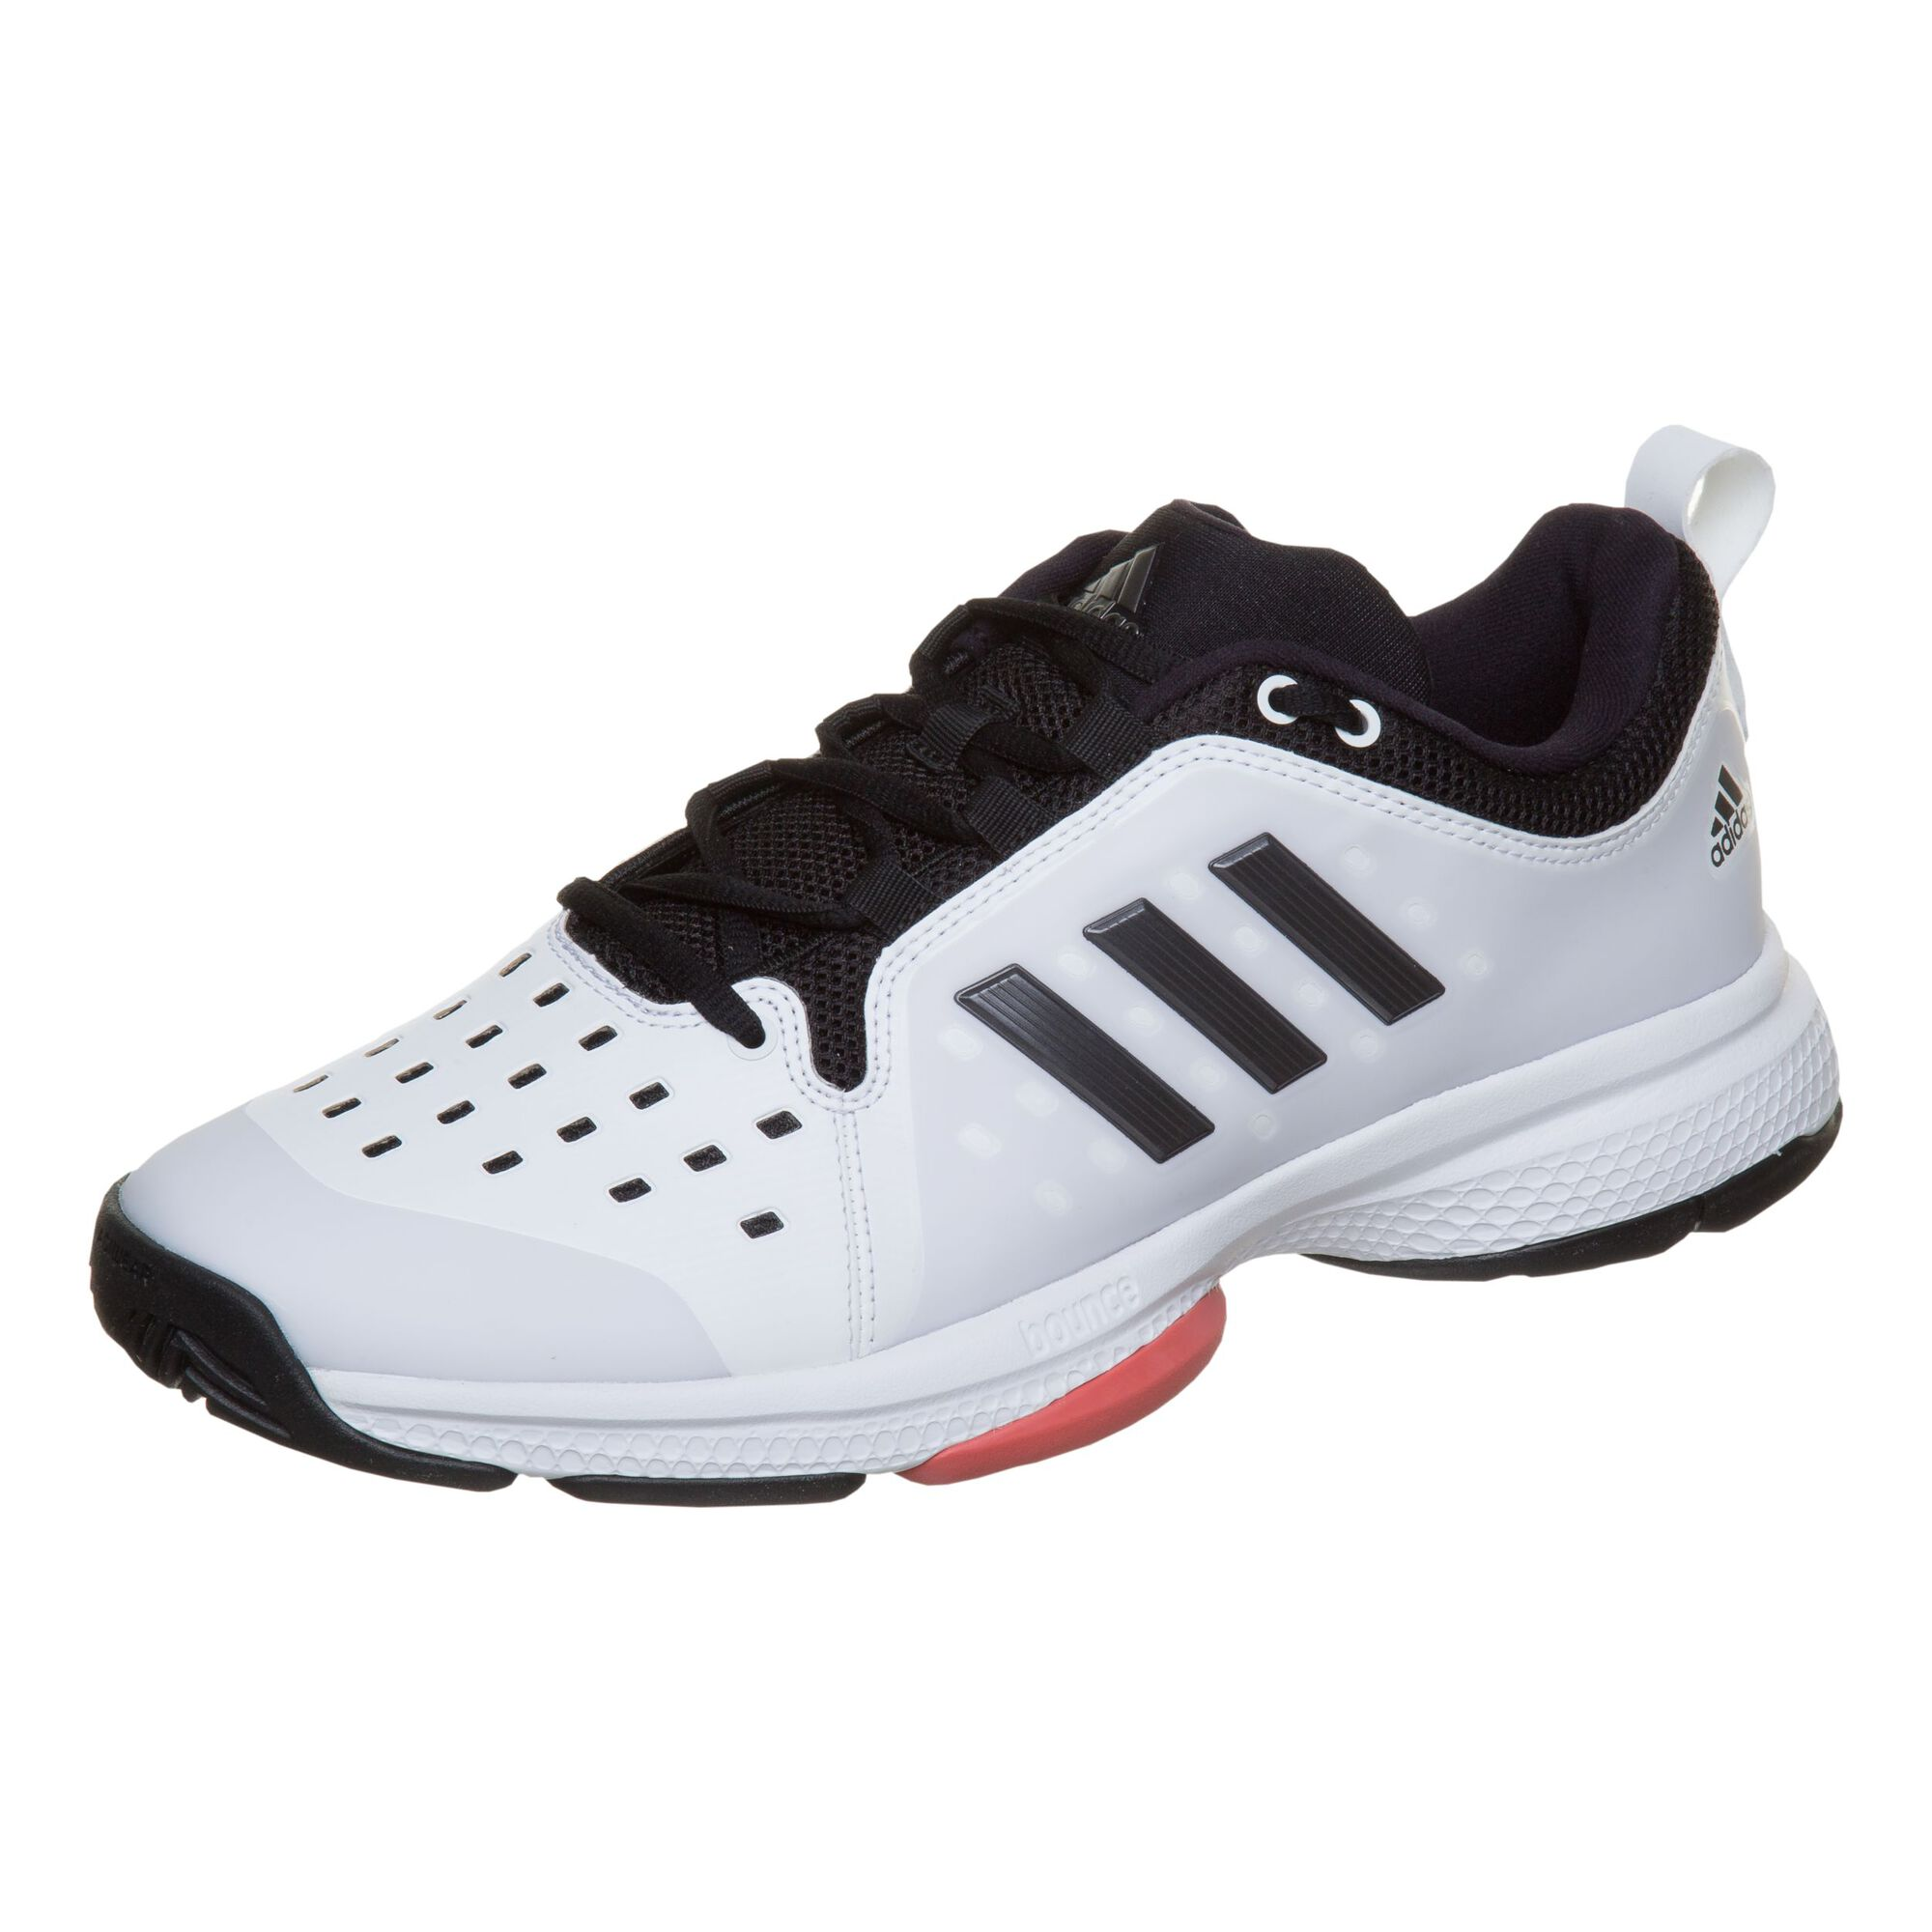 sports shoes c59a4 d1af2 Barricade Classic Bounce Men · Barricade Classic Bounce Men ...